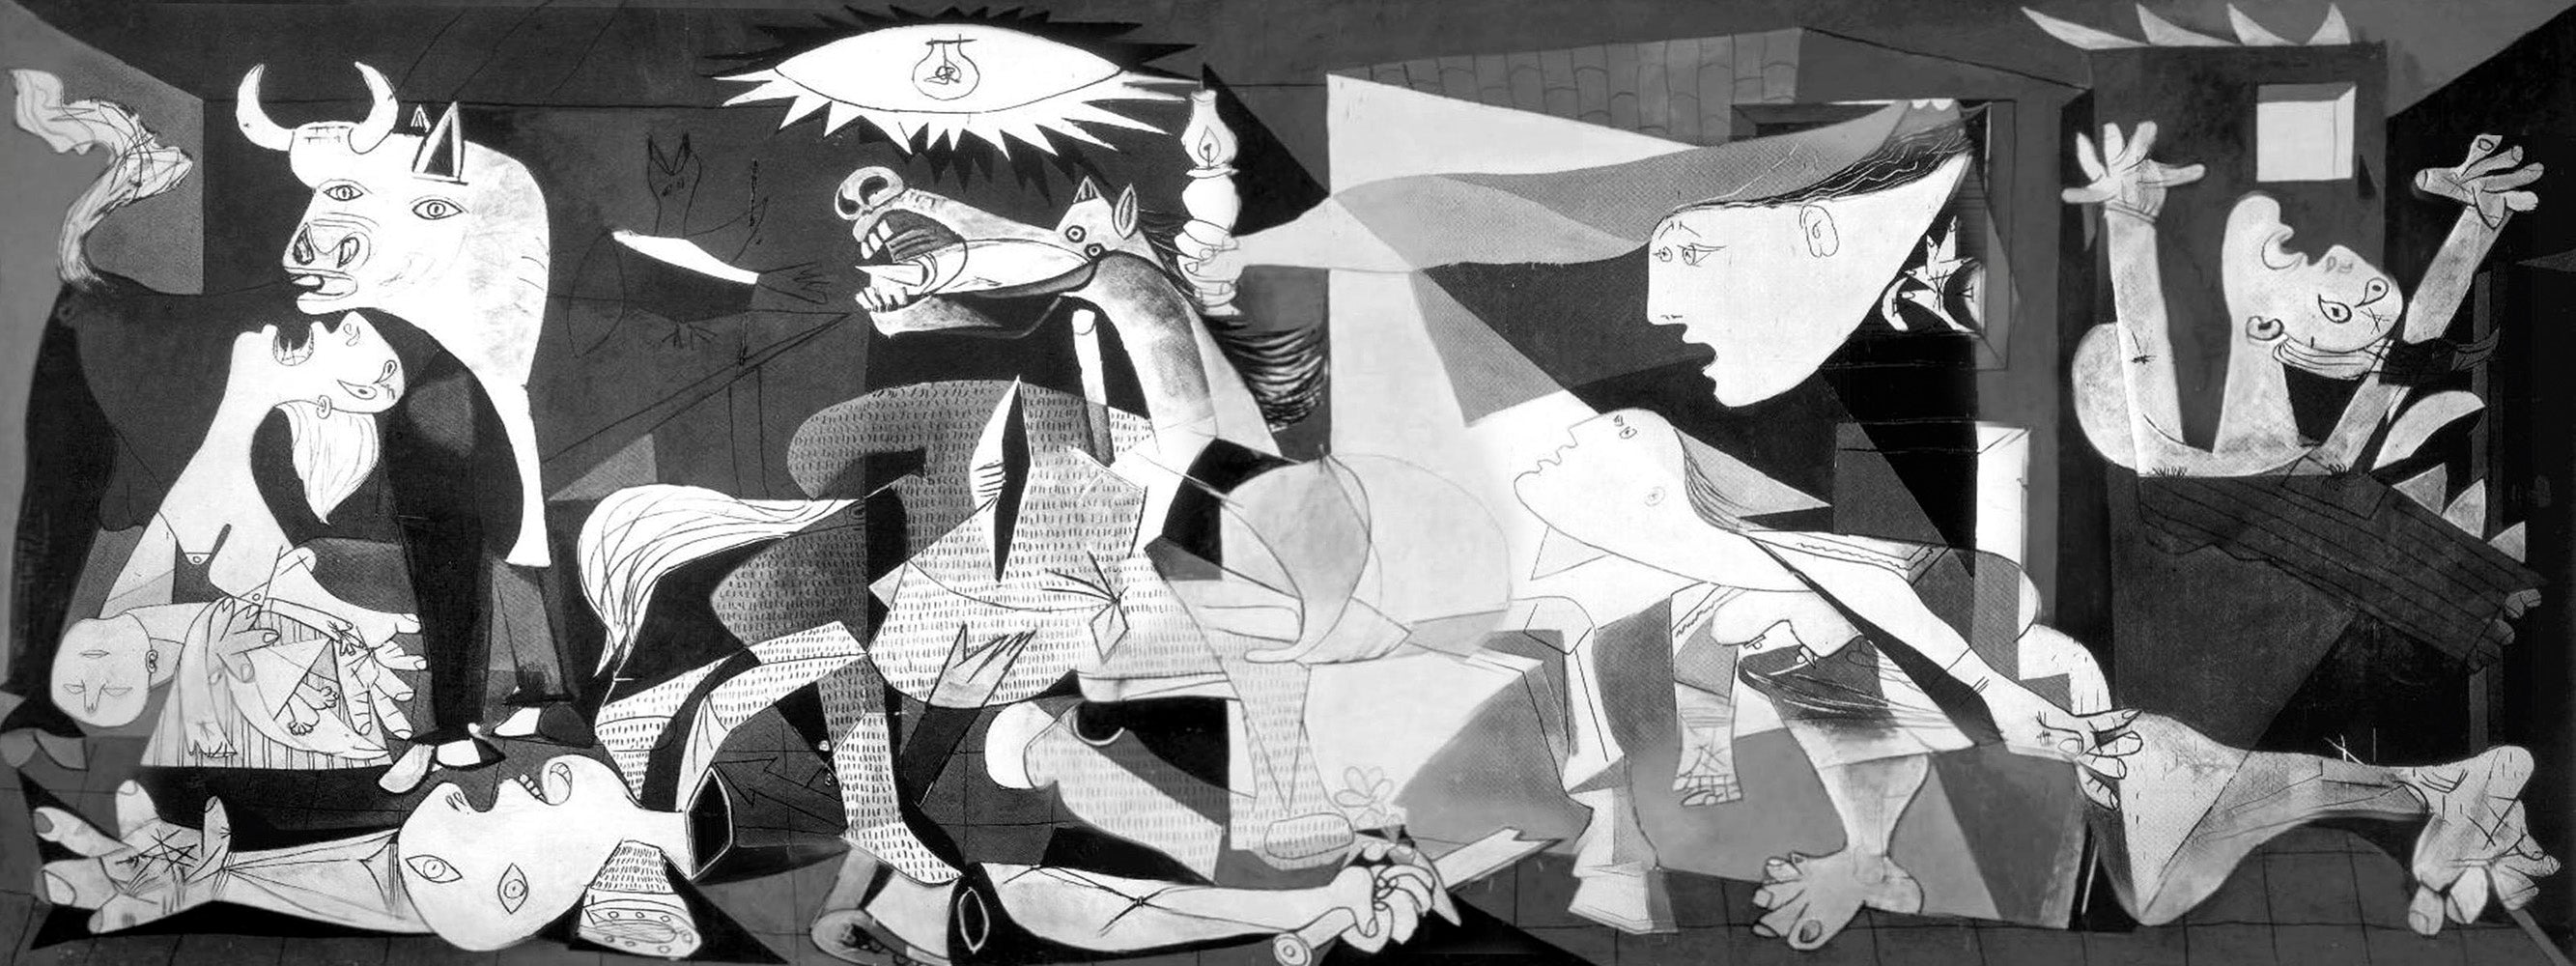 Picasso's 'Guernica': 10 Facts You Didn't Know About the Famous Painting